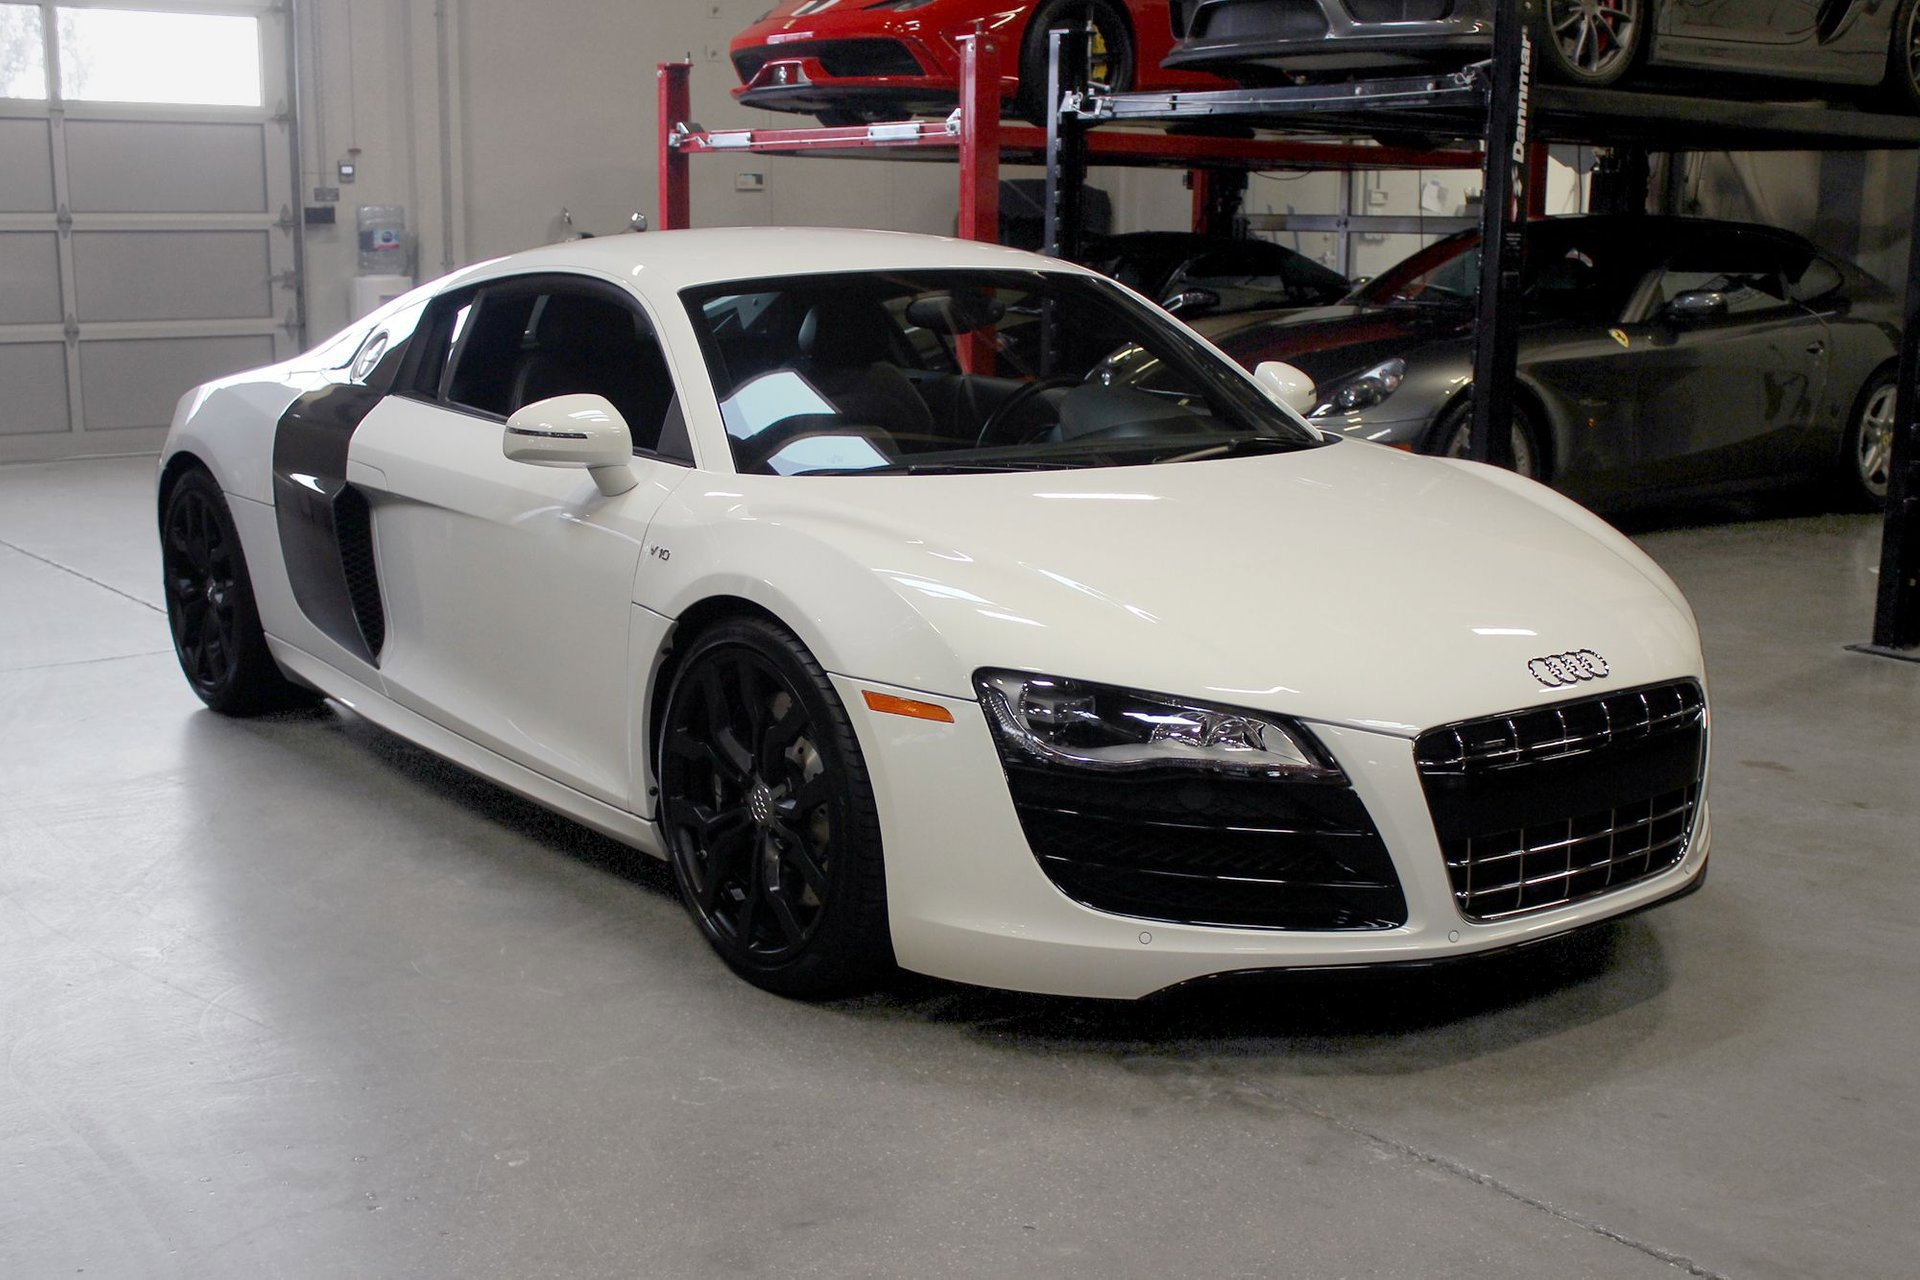 2011 Audi R8 5.2 Coupe image